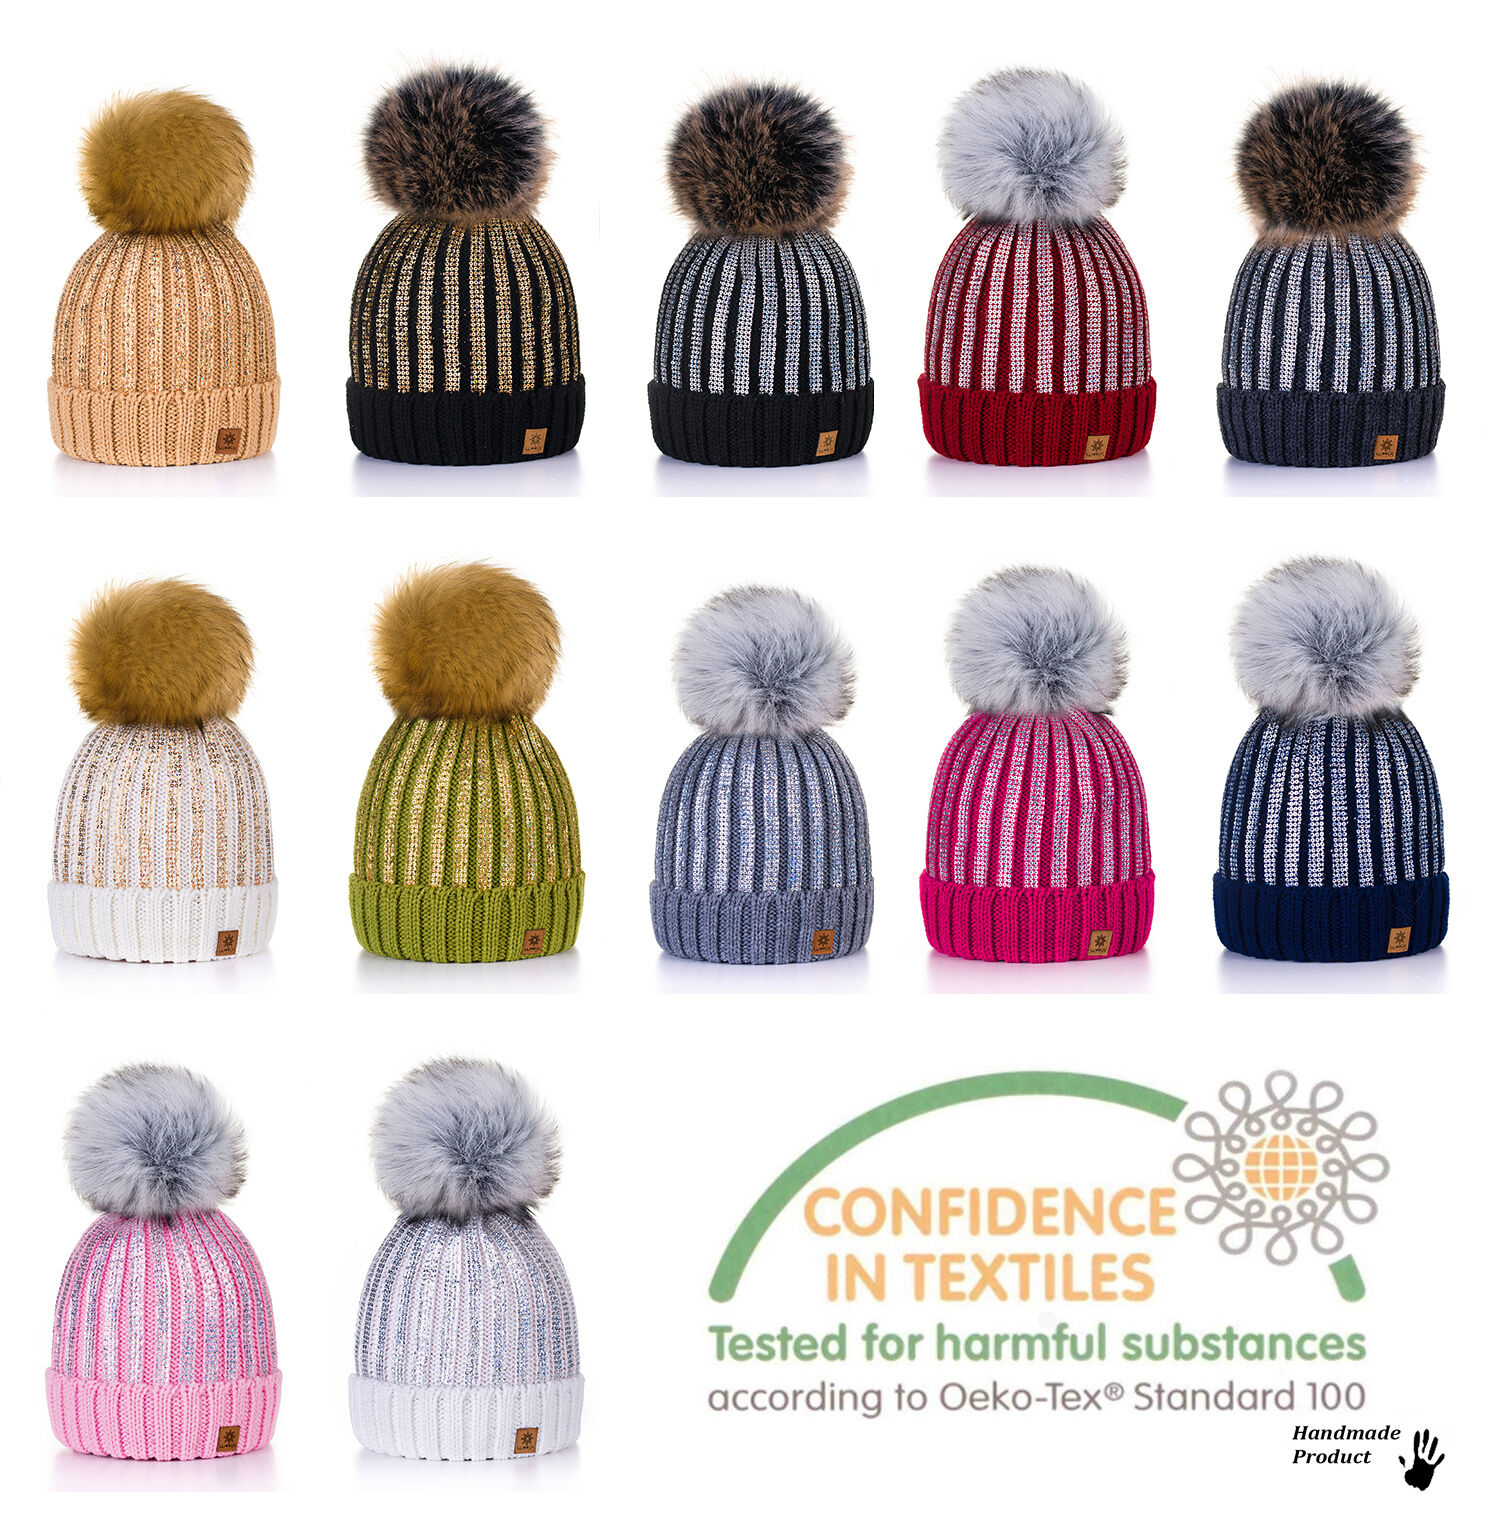 338aeeeda6c 4sold Womens Girls Winter Hat Knitted Beanie Large Pom Cap Ski Snowboard...  for sale online